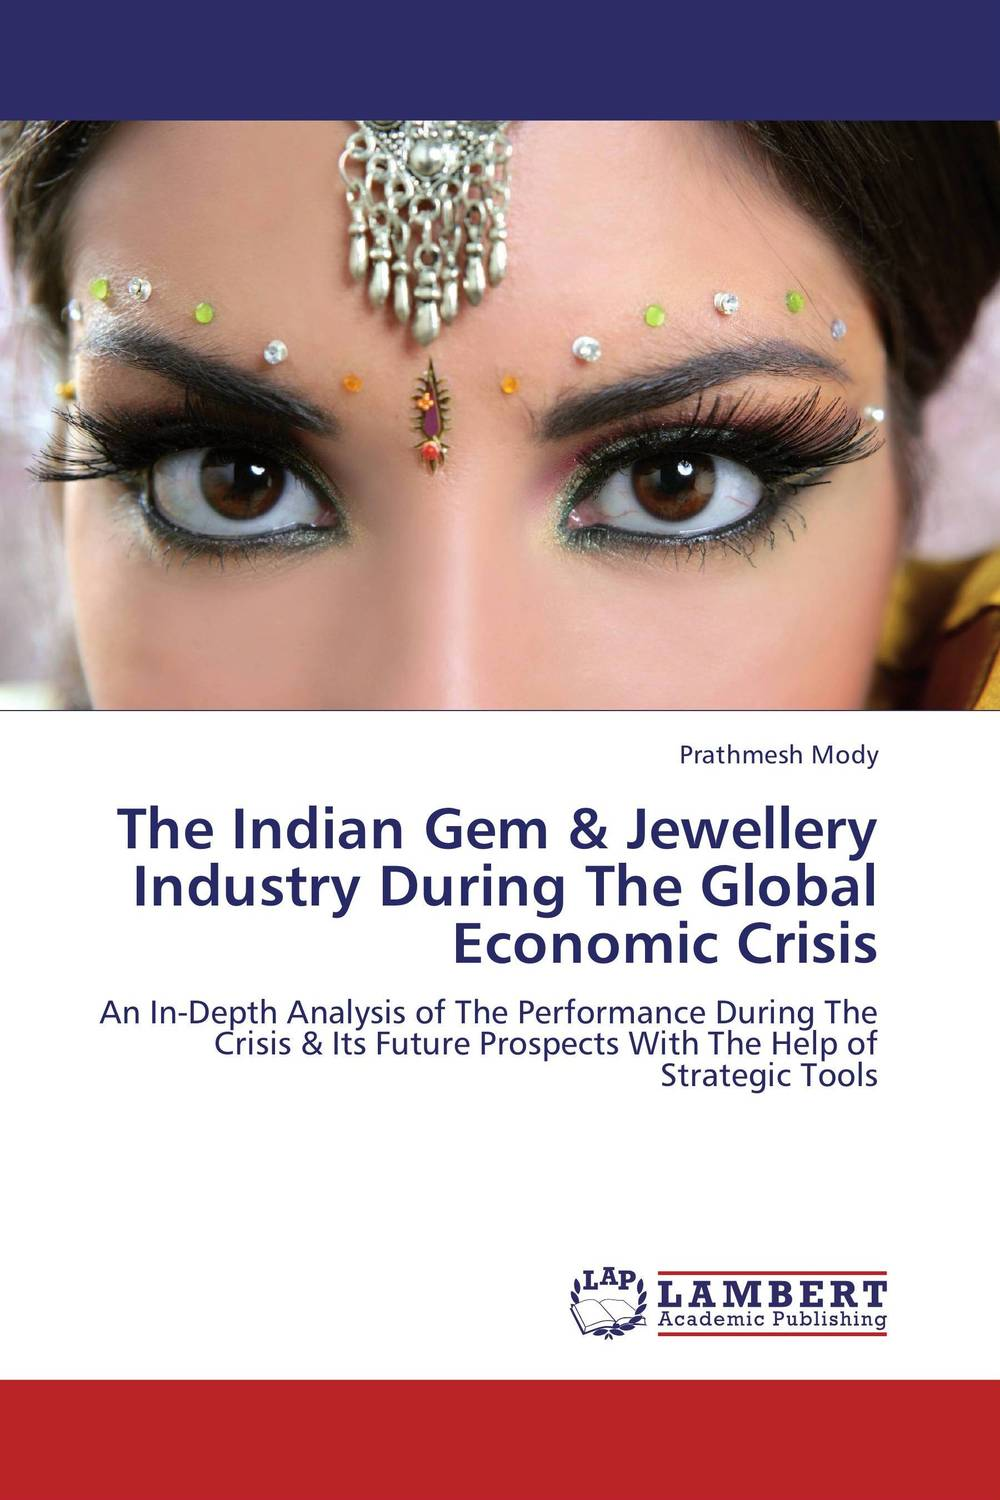 The Indian Gem & Jewellery Industry During The Global Economic Crisis терка электрическая kitfort кт 1318 1